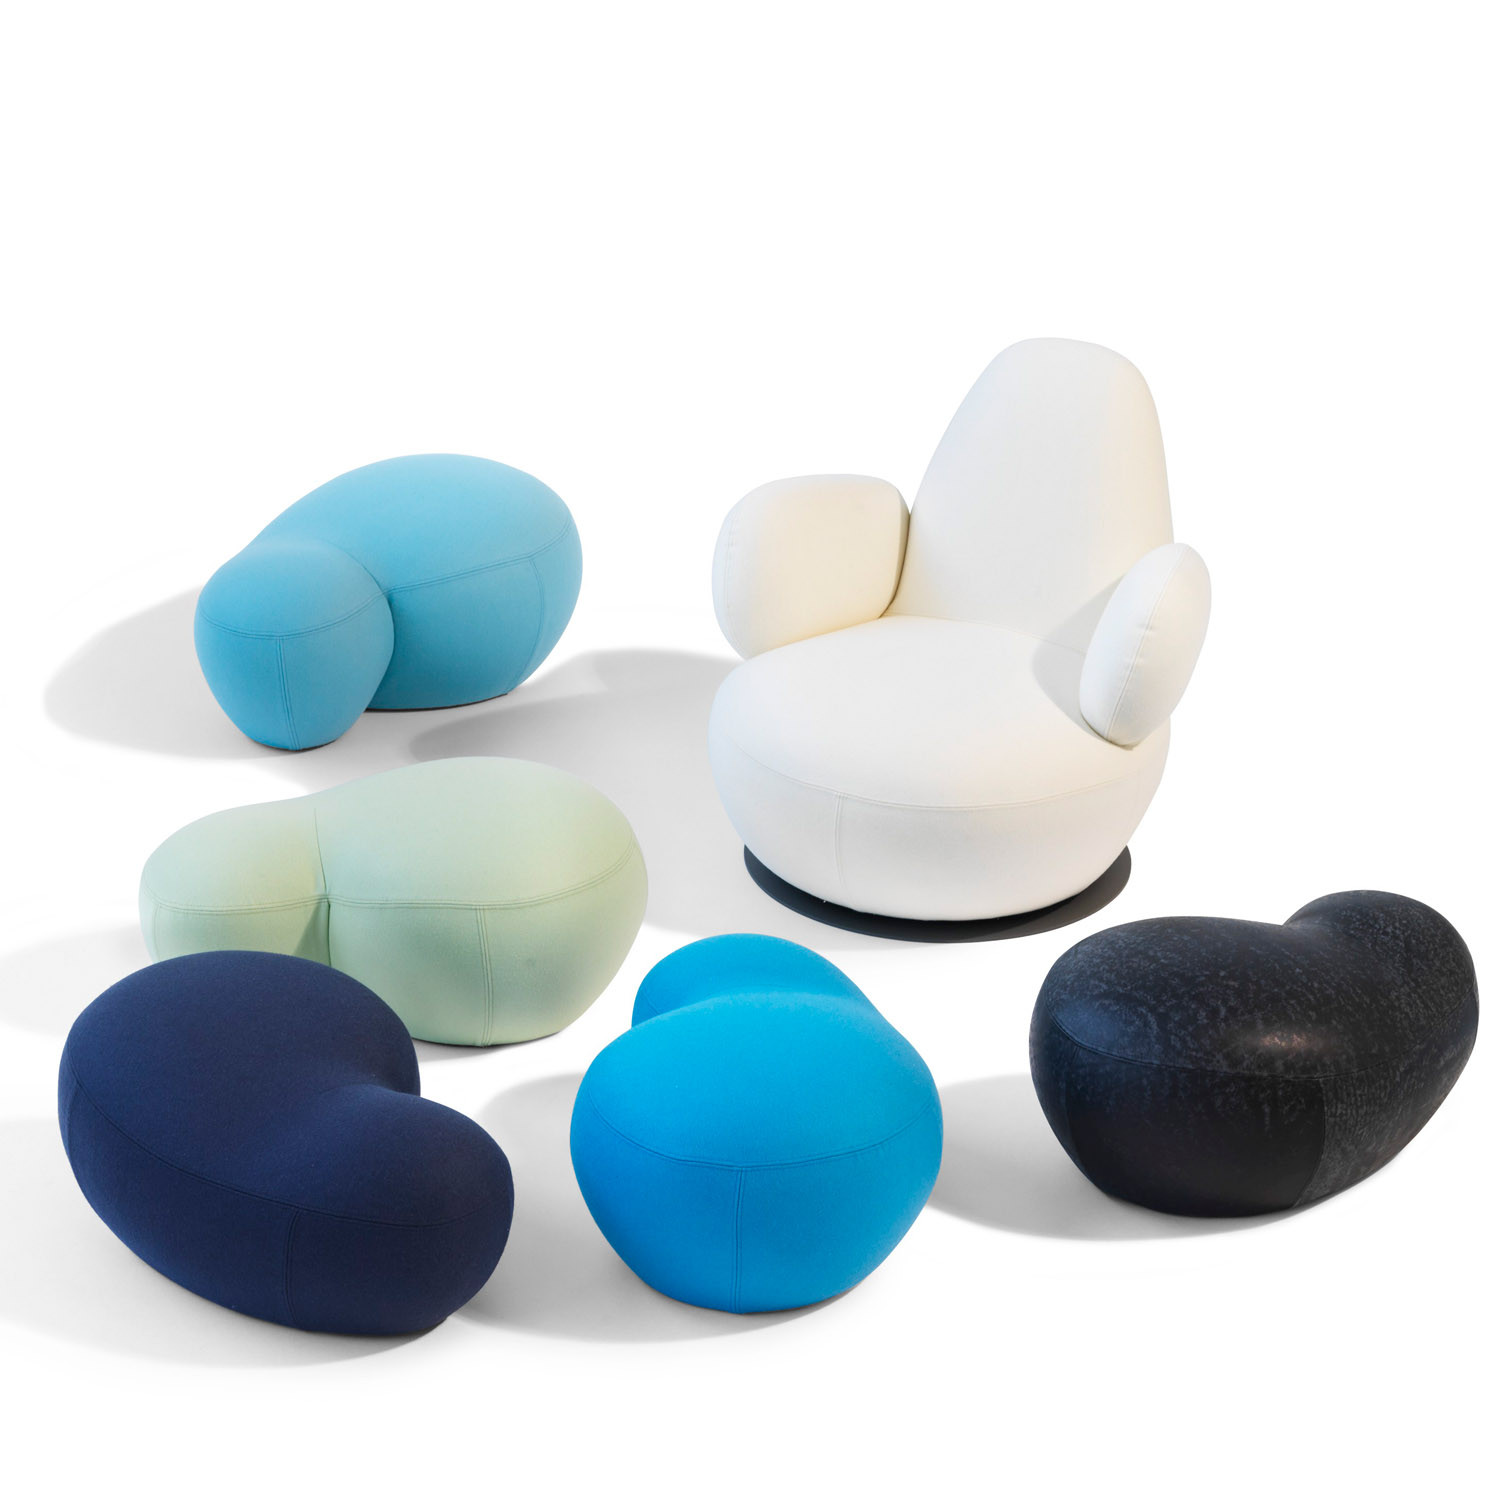 Puppa Soft Seating with Oppo Swivel Chair